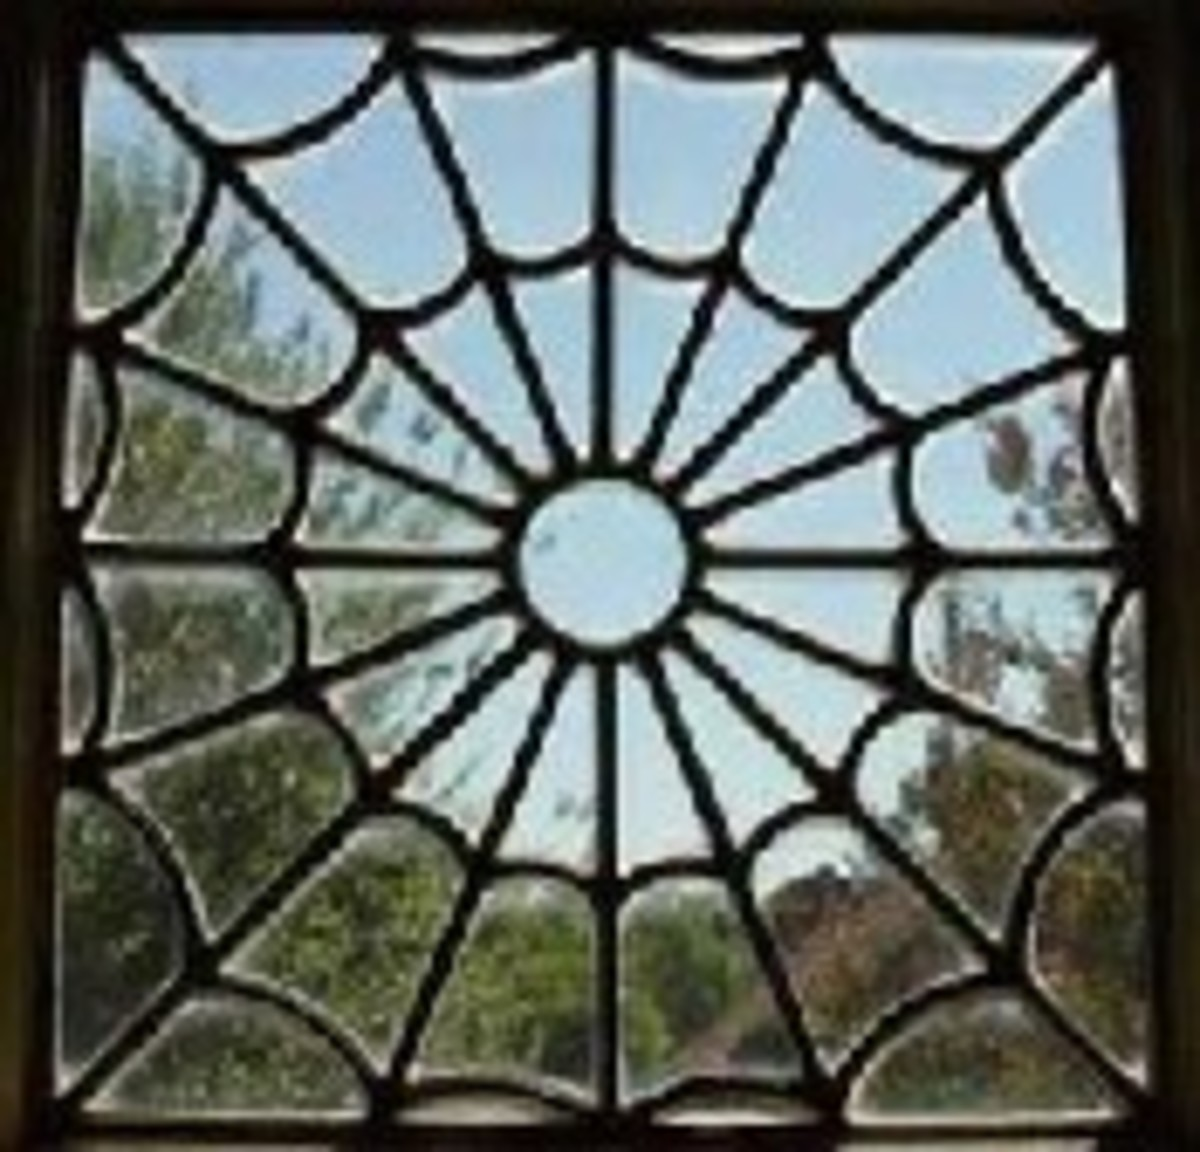 A window containing Sarah's typical spiderweb motif